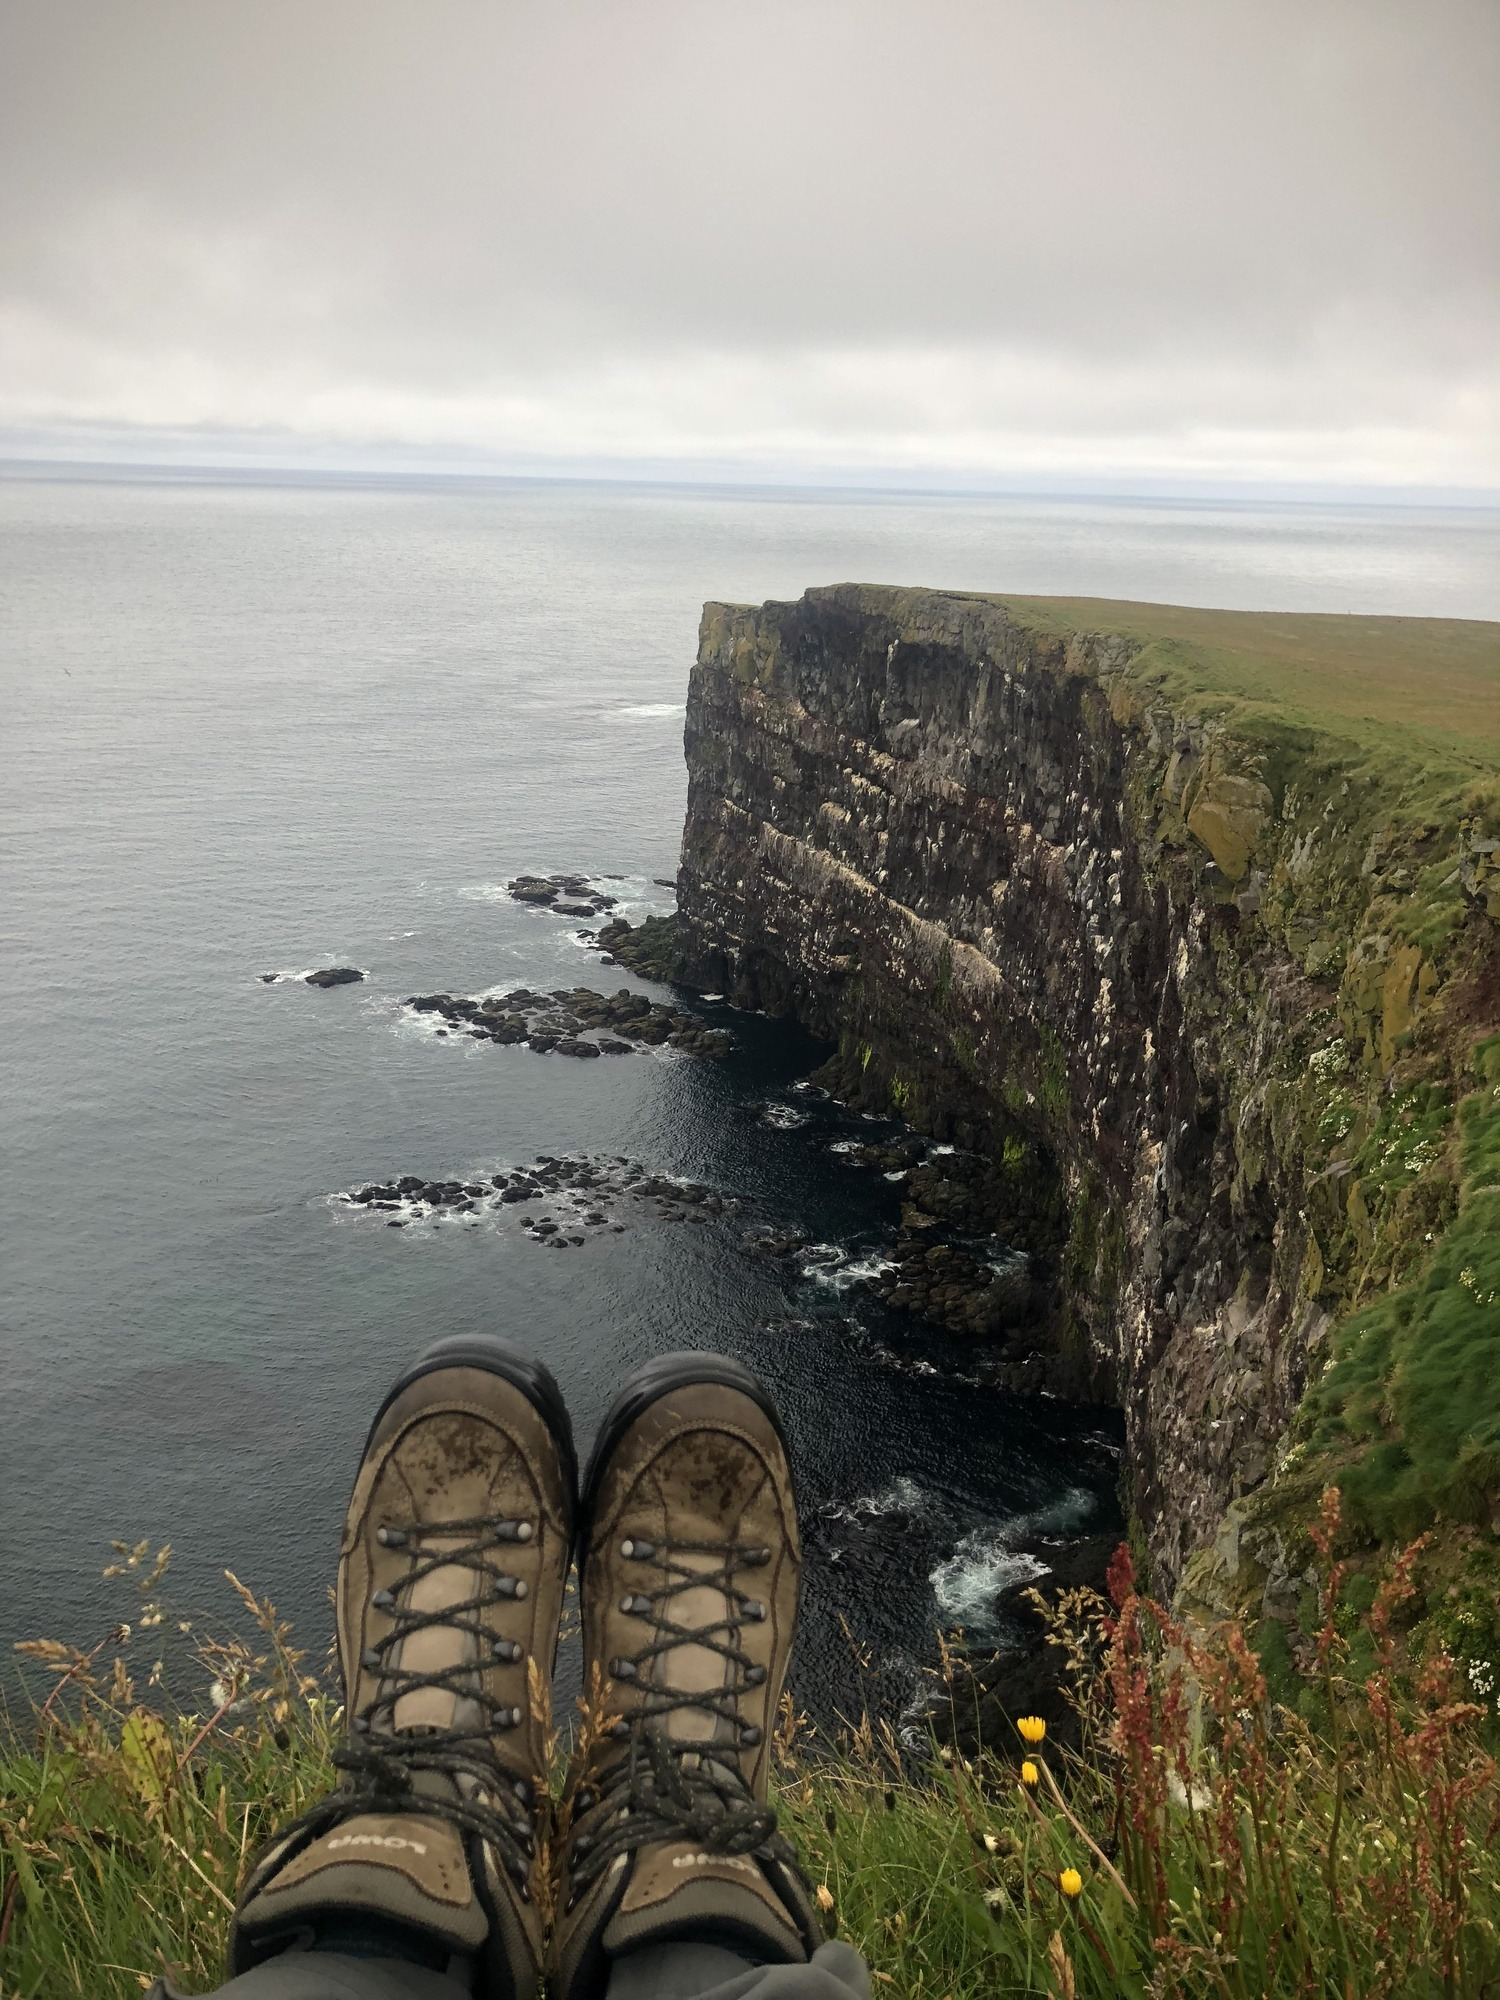 Hiking boots on edge of cliff